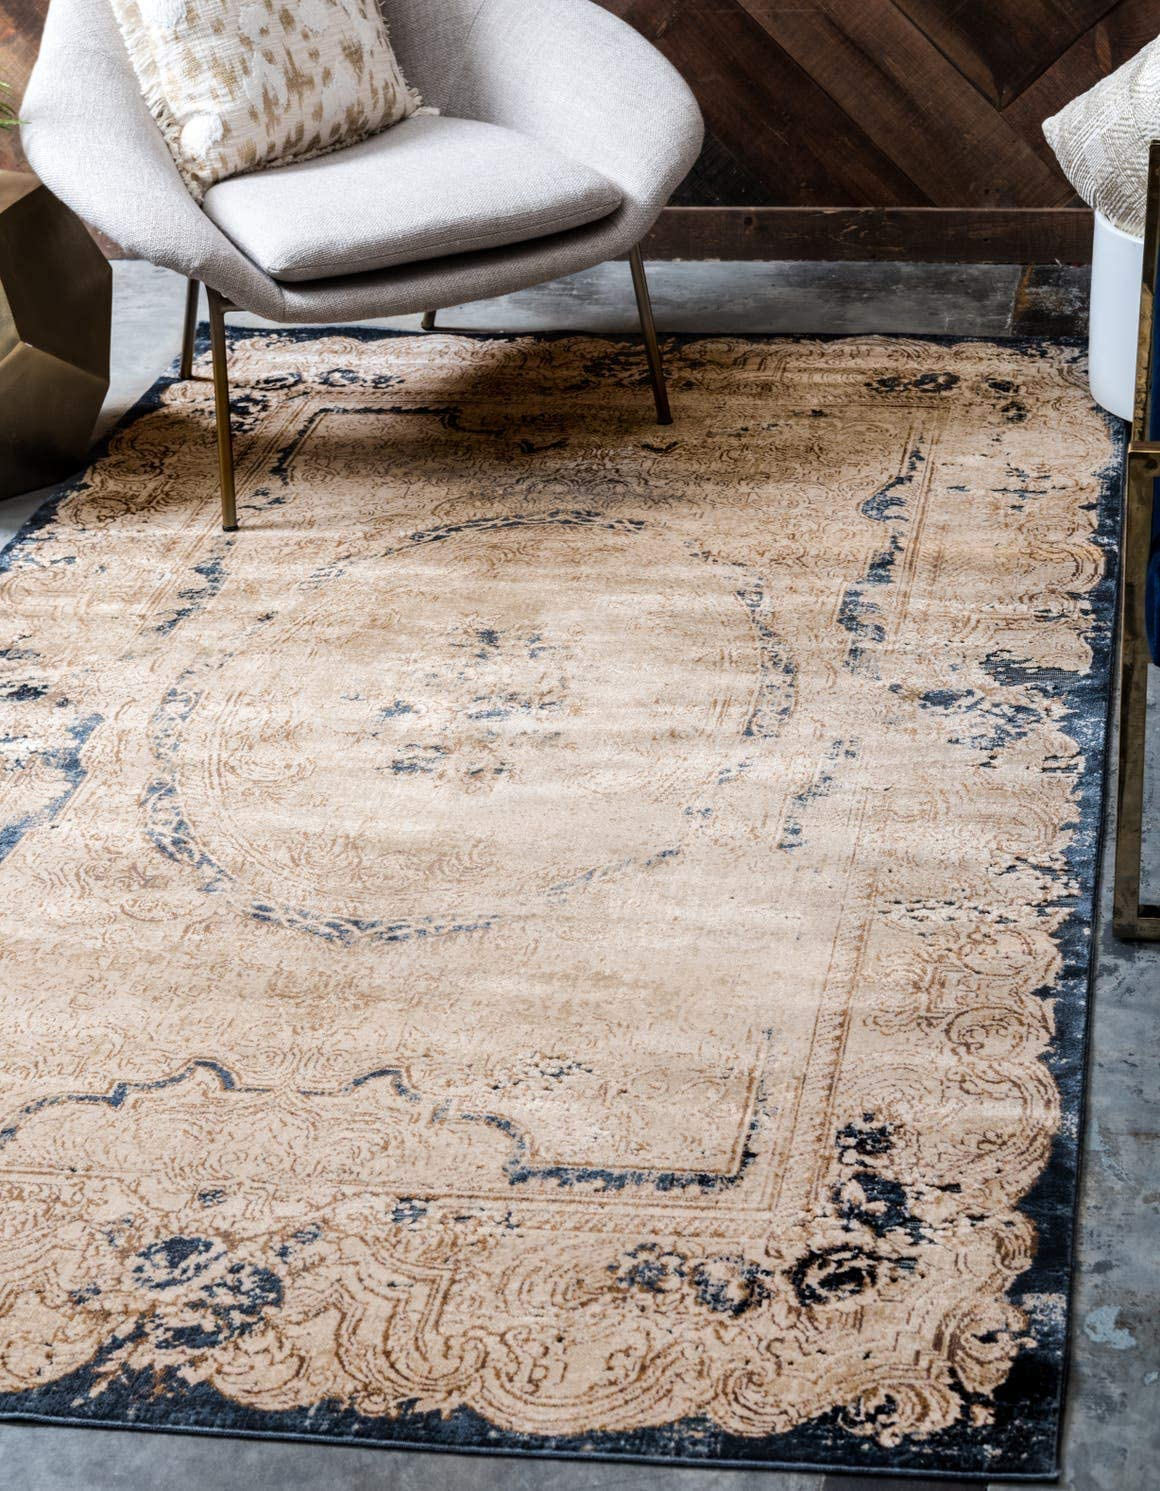 Unique Loom Chateau Collection Distressed Vintage Traditional Textured Cream Area Rug 10 0 x 14 5